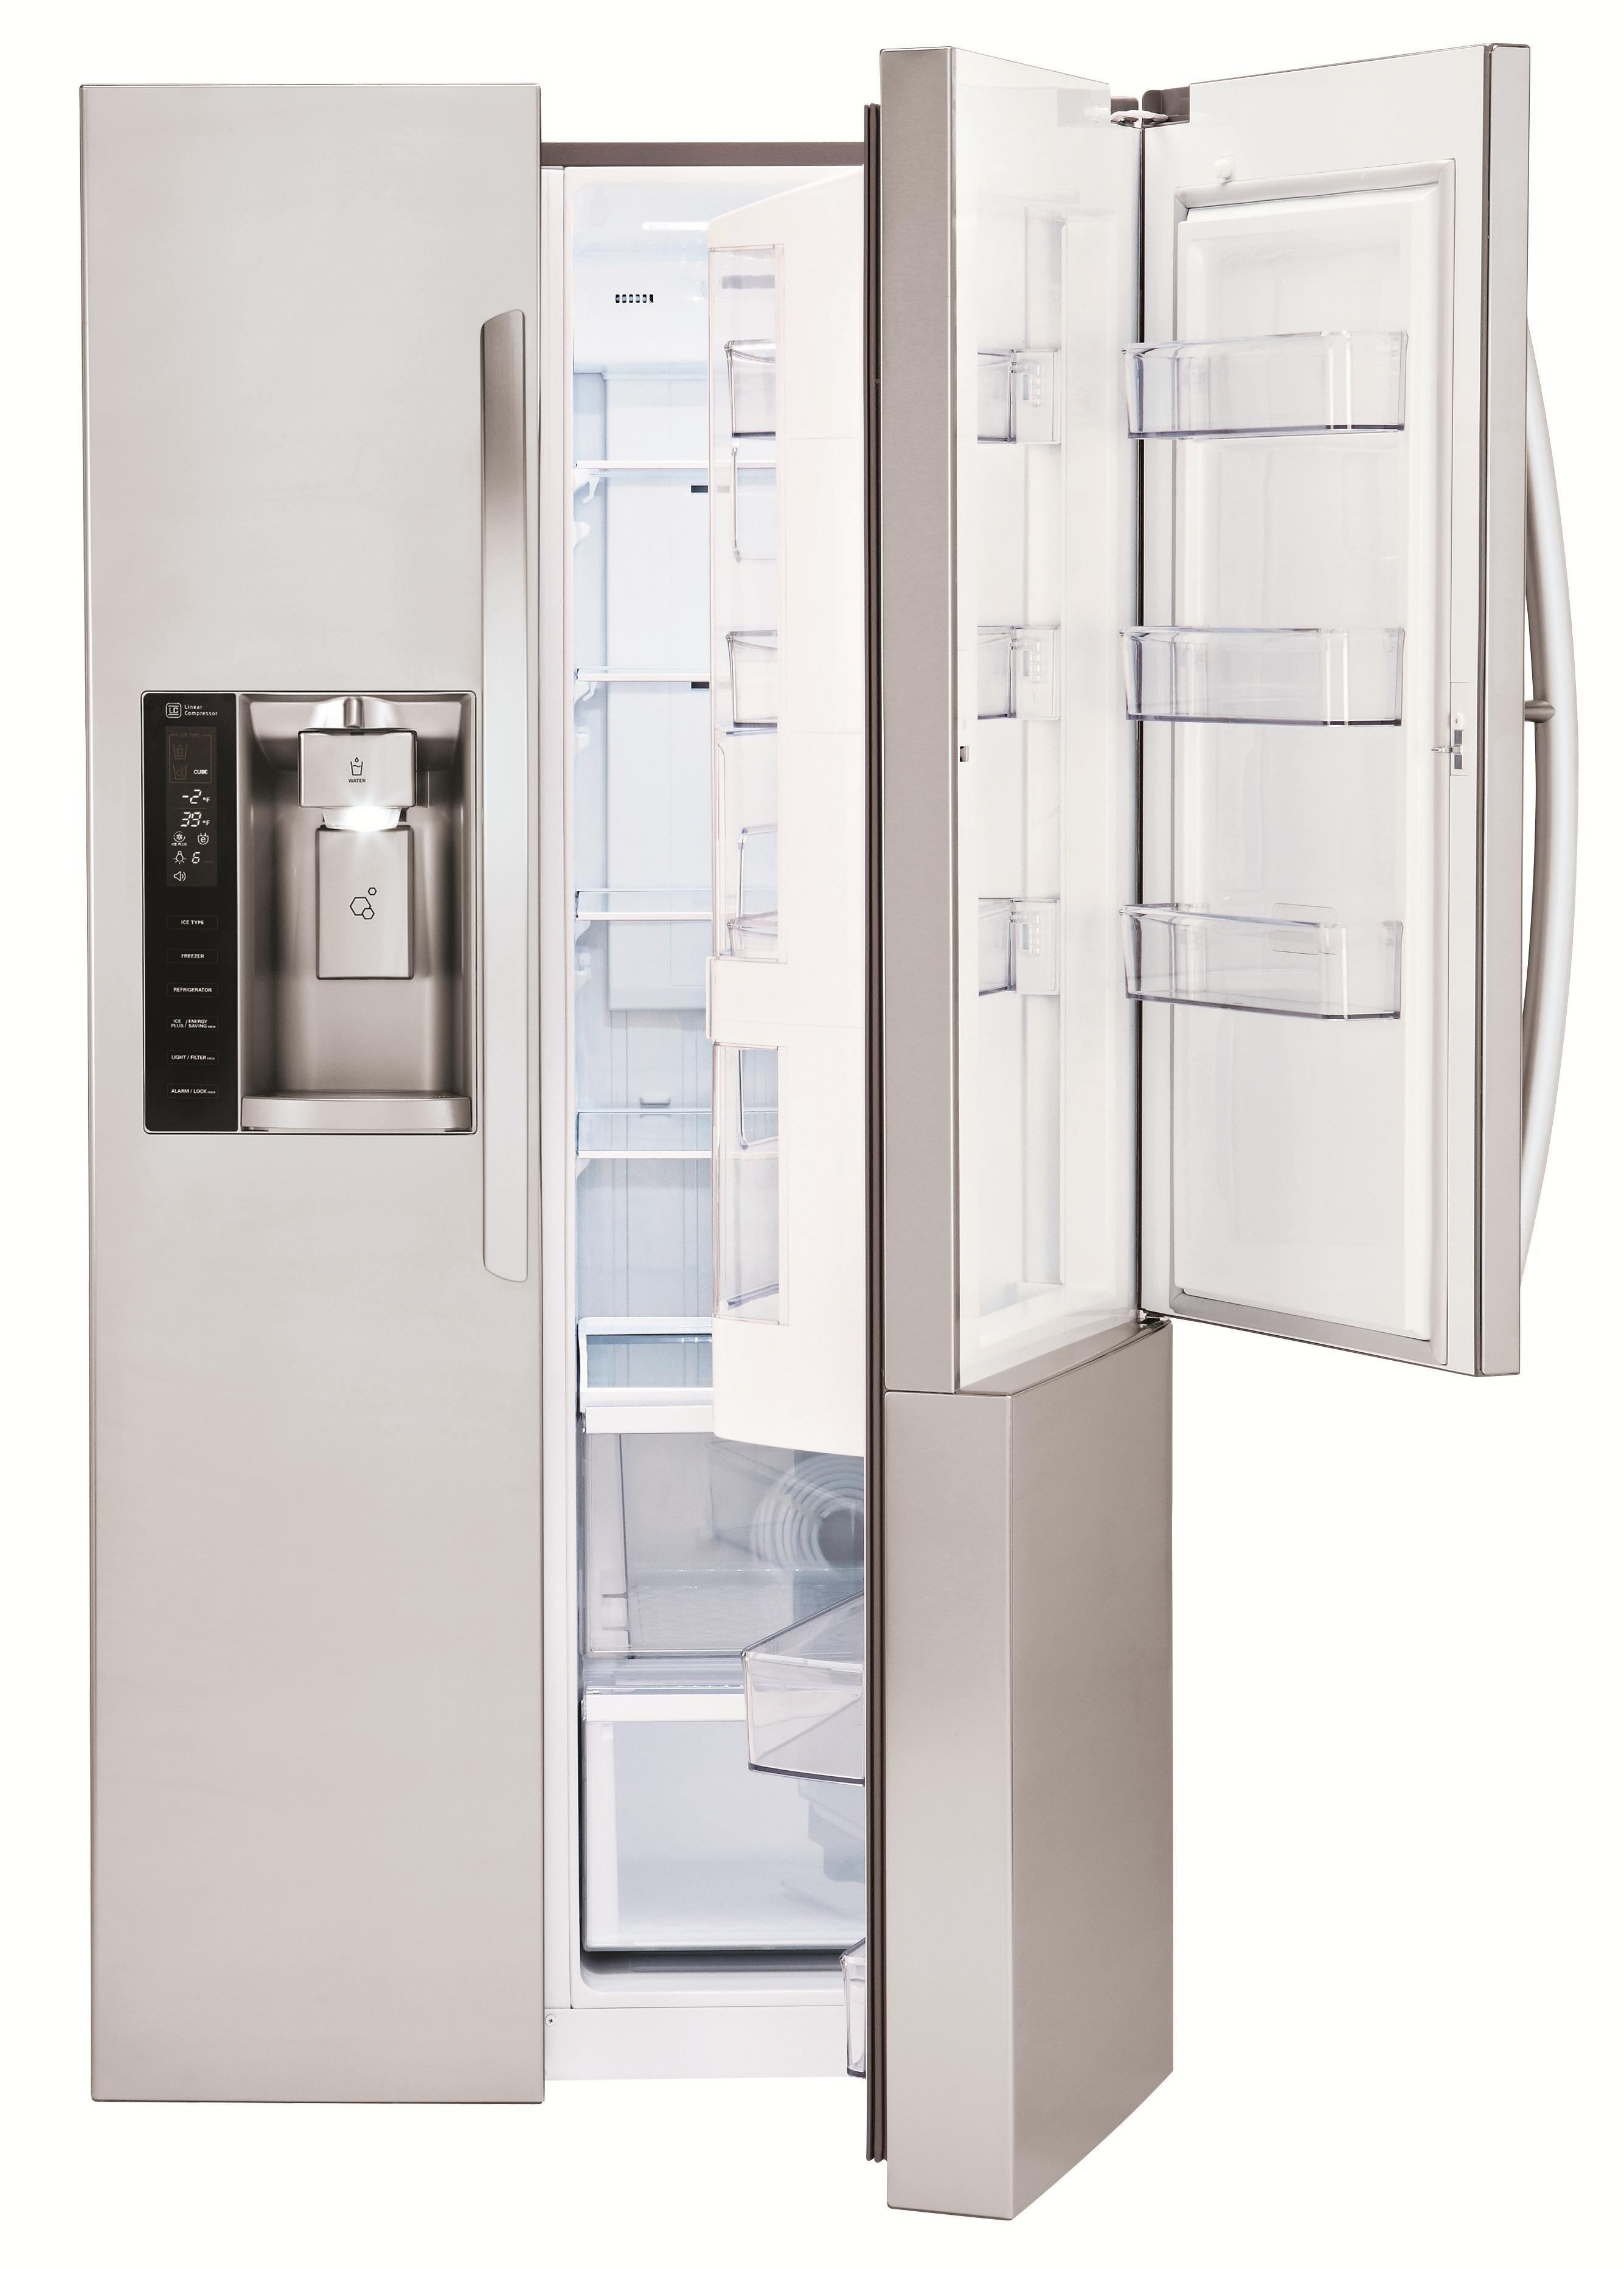 LG Appliances Side by Side Refrigerators 26 cu. ft. Side by Side 3 Door Refridgerator - Item Number: LSXS26366S